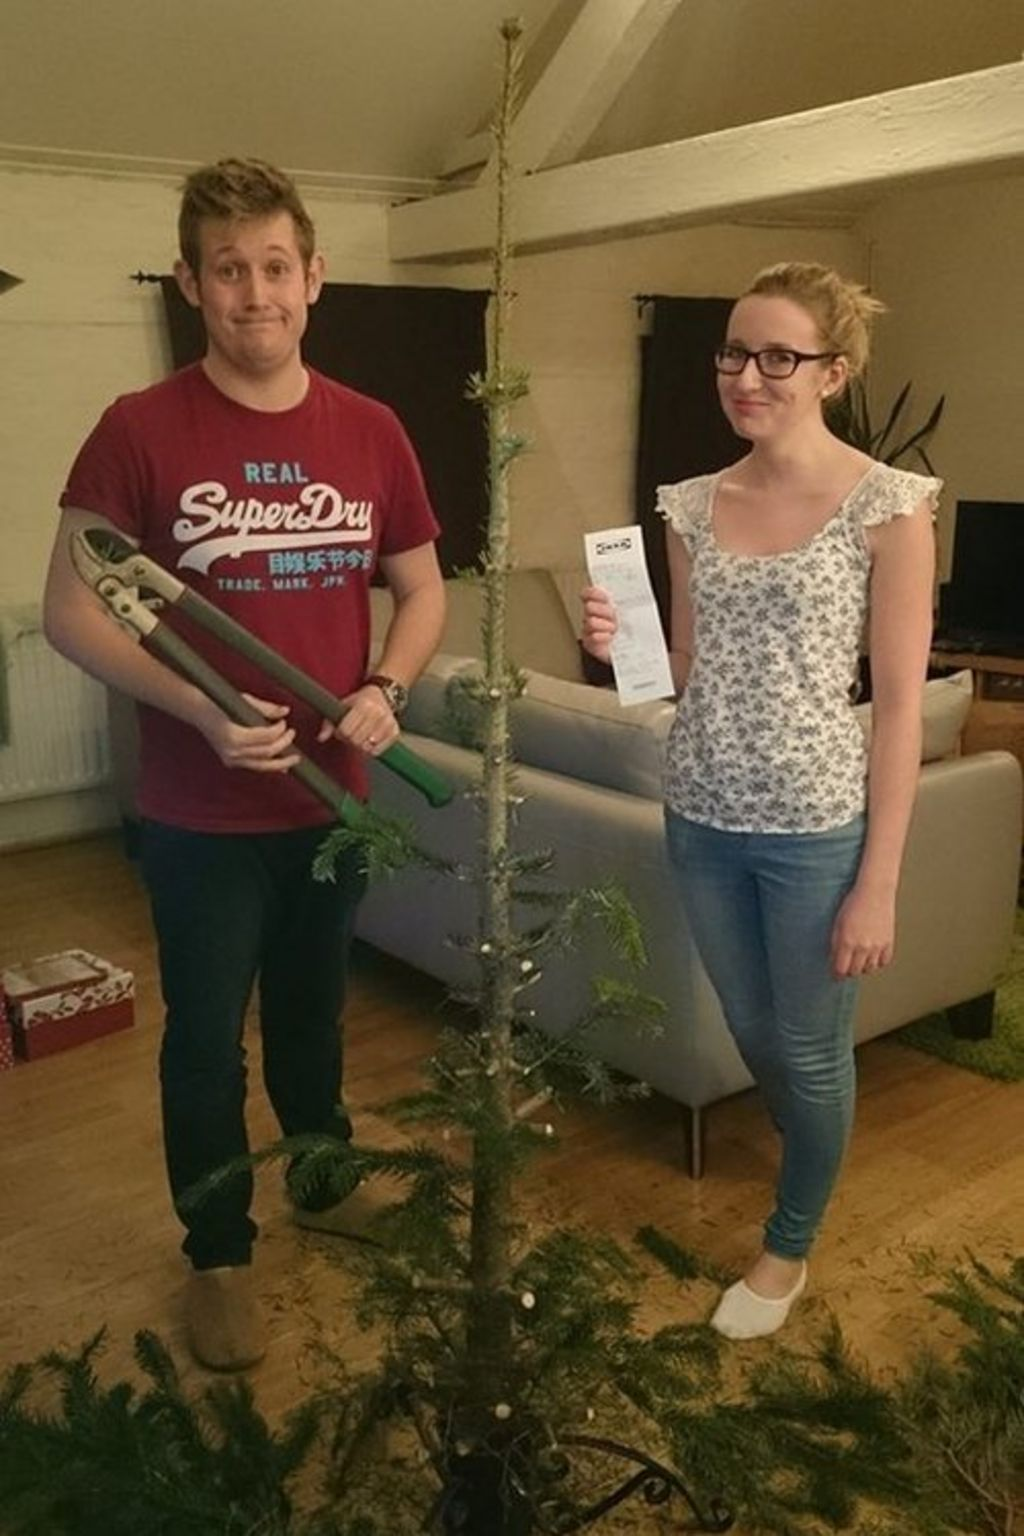 Christmas Tree Aphids.Christmas Tree Aphids Invade Derby Couple S Home Bbc News